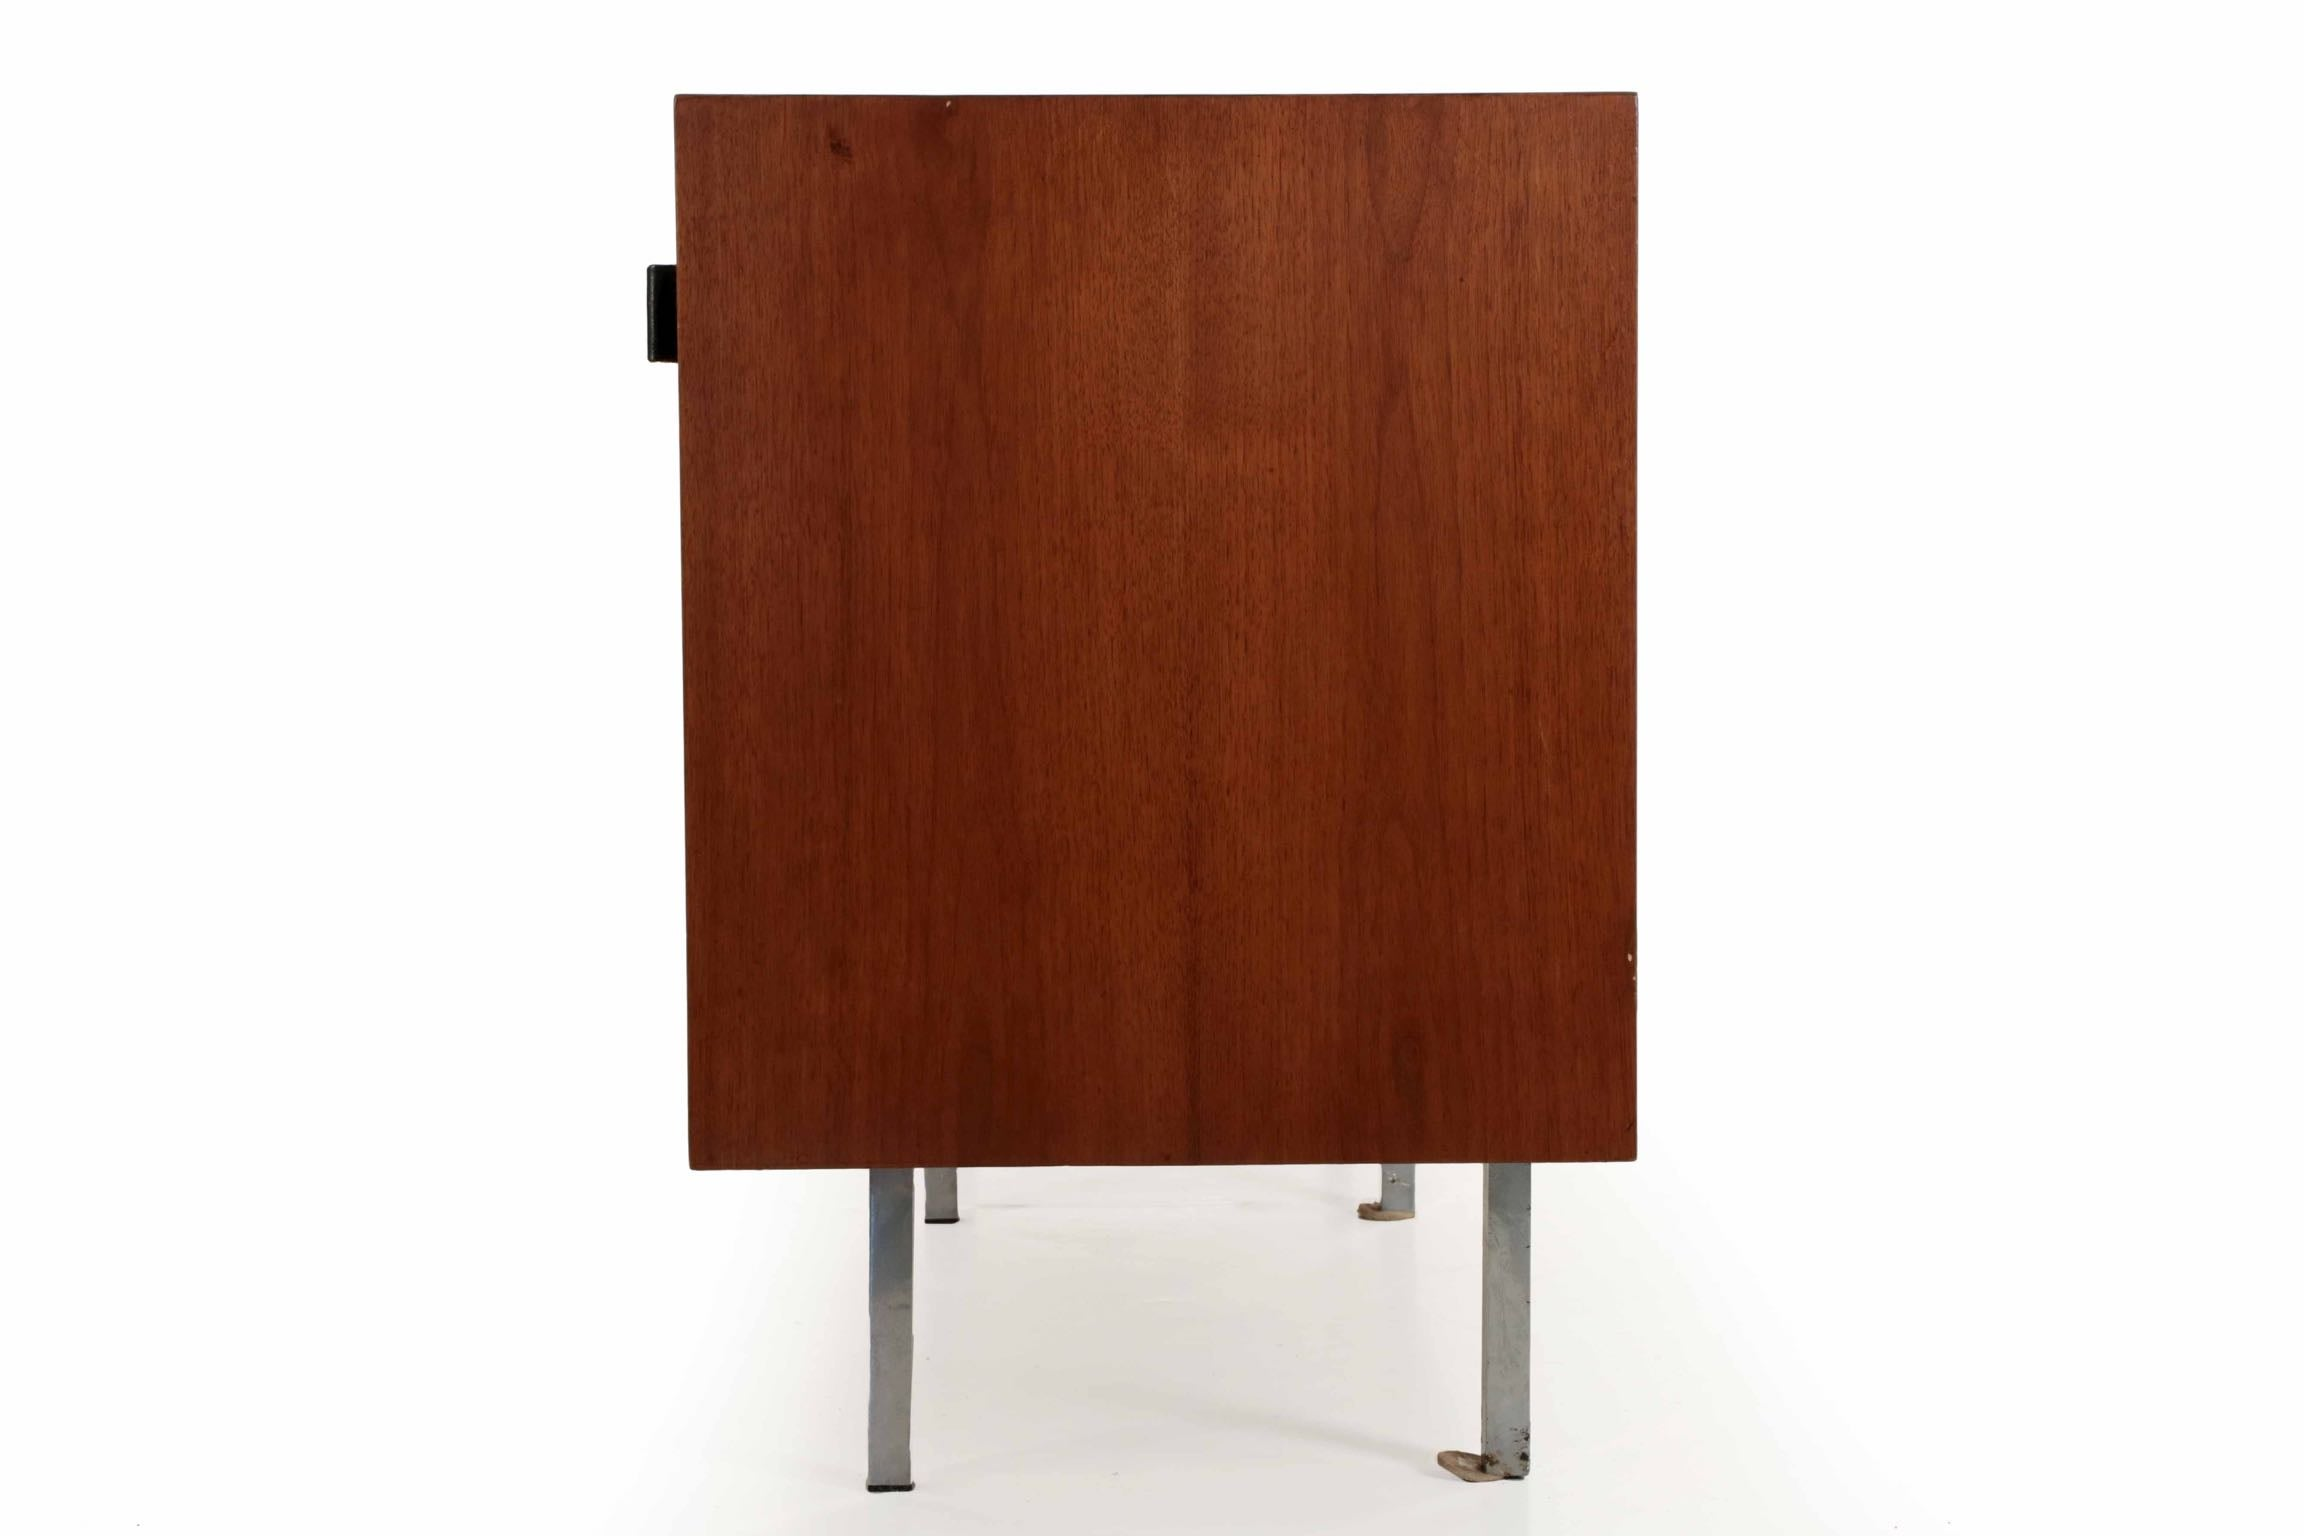 Florence Knoll Walnut And White Laminate Credenza Sideboard Cabinet, Circa